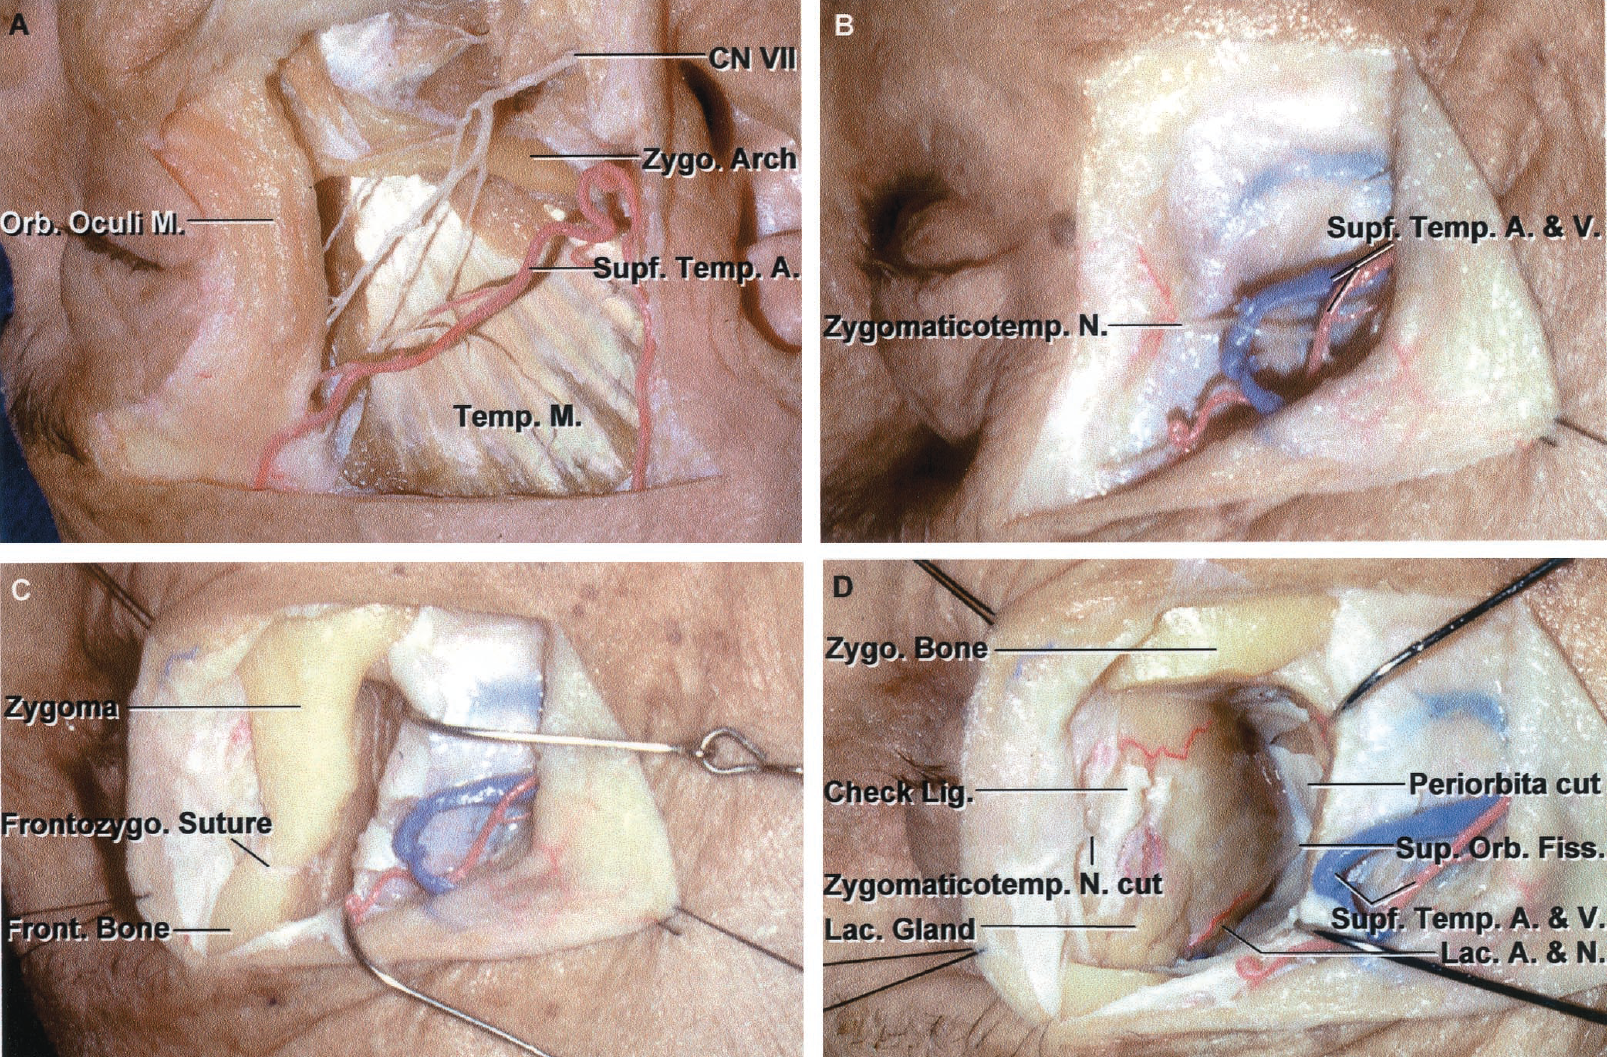 FIGURE 7.11. A-D. Lateral orbital approach. A, structures superficial to the lateral orbital wall include the branches of the facial nerve to the orbicularis oculi and frontalis muscles, which cross the midportion of the zygomatic arch; the anterior branch of the superficial temporal artery; and the temporalis muscle, which passes medial to the zygomatic arch to insert on the coronoid process of the mandible. B–E, exposure obtained with a lateral orbitotomy. B, the curved skin incision begins in front of the ear, extends forward along the upper edge of the zygoma, and turns upward along the lateral rim of the orbit. The superficial temporal artery and vein are exposed. A zygomaticotemporal nerve branch of the maxillary nerve passes through the lateral orbital wall to convey sensation to the temple. Care is required to preserve the branches of the facial nerve to the orbicularis oculi and frontalis muscles and, if transected, reapproximation should be attempted at the end of the operation. C, the lateral orbital rim formed by the frontal process of the zygomatic bone and the zygomatic process of the frontal bone has been exposed. The temporalis muscle has been elevated from the lateral orbital wall. D, the part of the lateral wall of the orbit formed by the frontal and zygomatic bones and the adjacent part of the sphenoid wings has been elevated as a small bone flap to expose the periorbita of the anterior two-thirds of the orbital wall. The lacrimal artery and nerve course in the orbital fat above the lateral rectus muscle. The orbital part of the lacrimal gland is exposed outside the orbital fat. The lateral orbital rim, which has been removed in a single piece, is replaced after removing the orbital lesion.